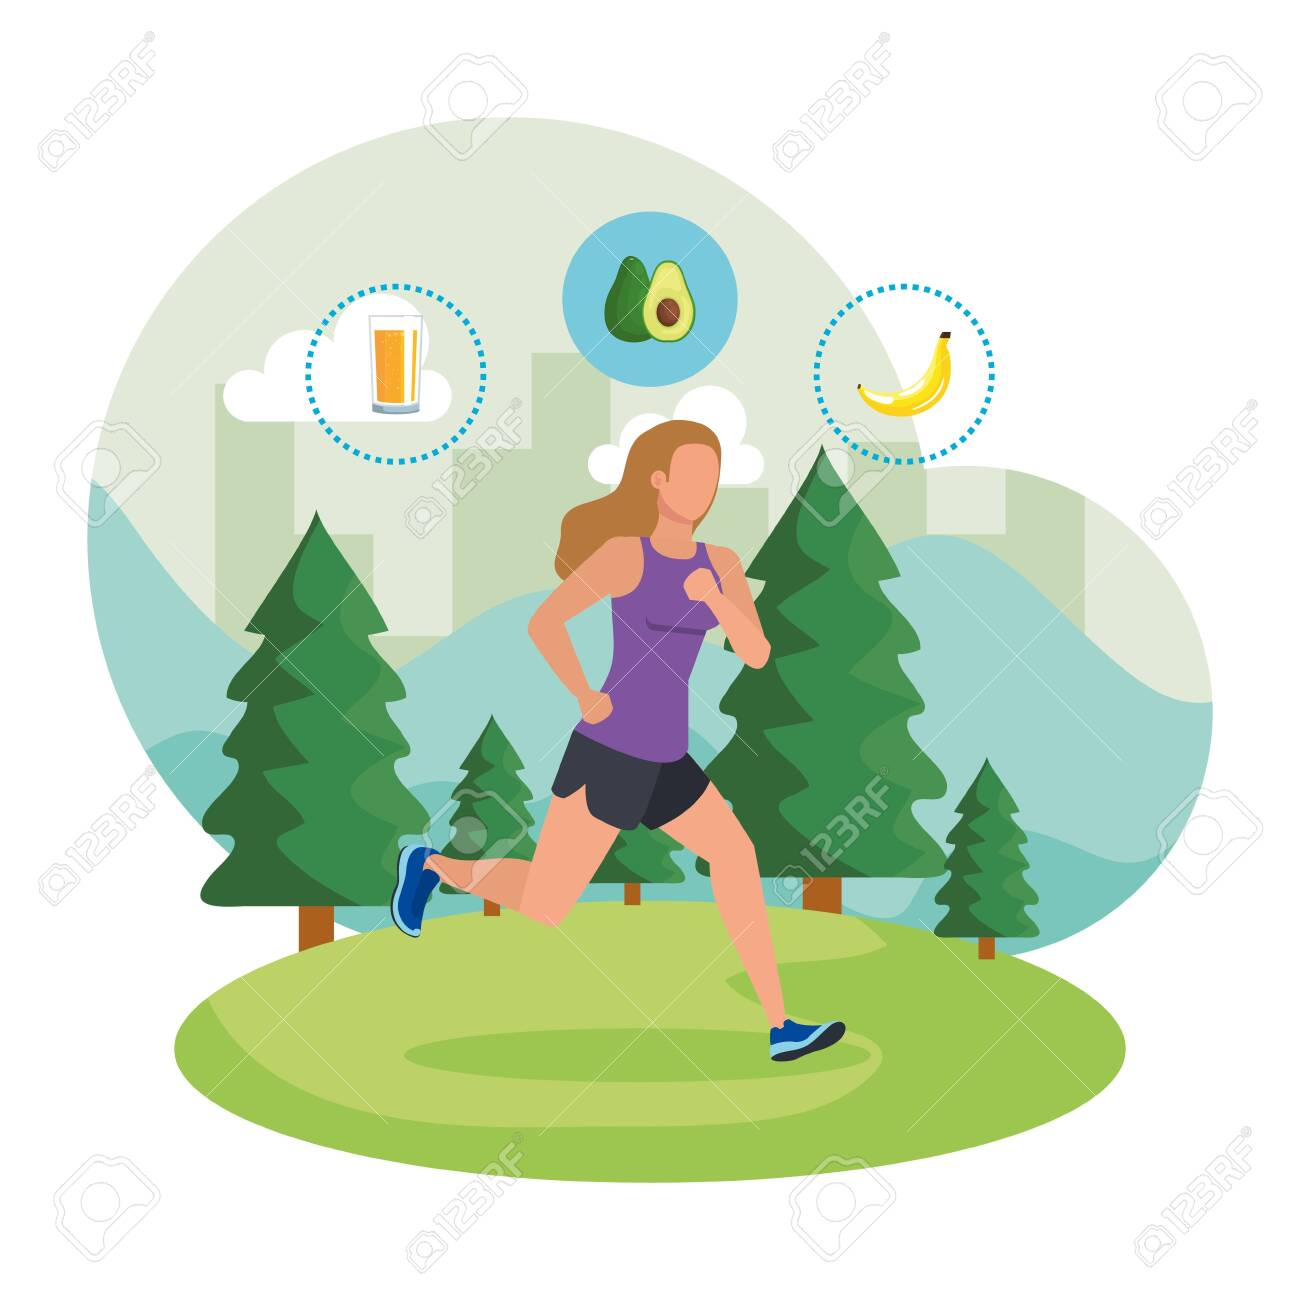 athletic woman running in the landscape with healthy icons vector illustration - 133835805